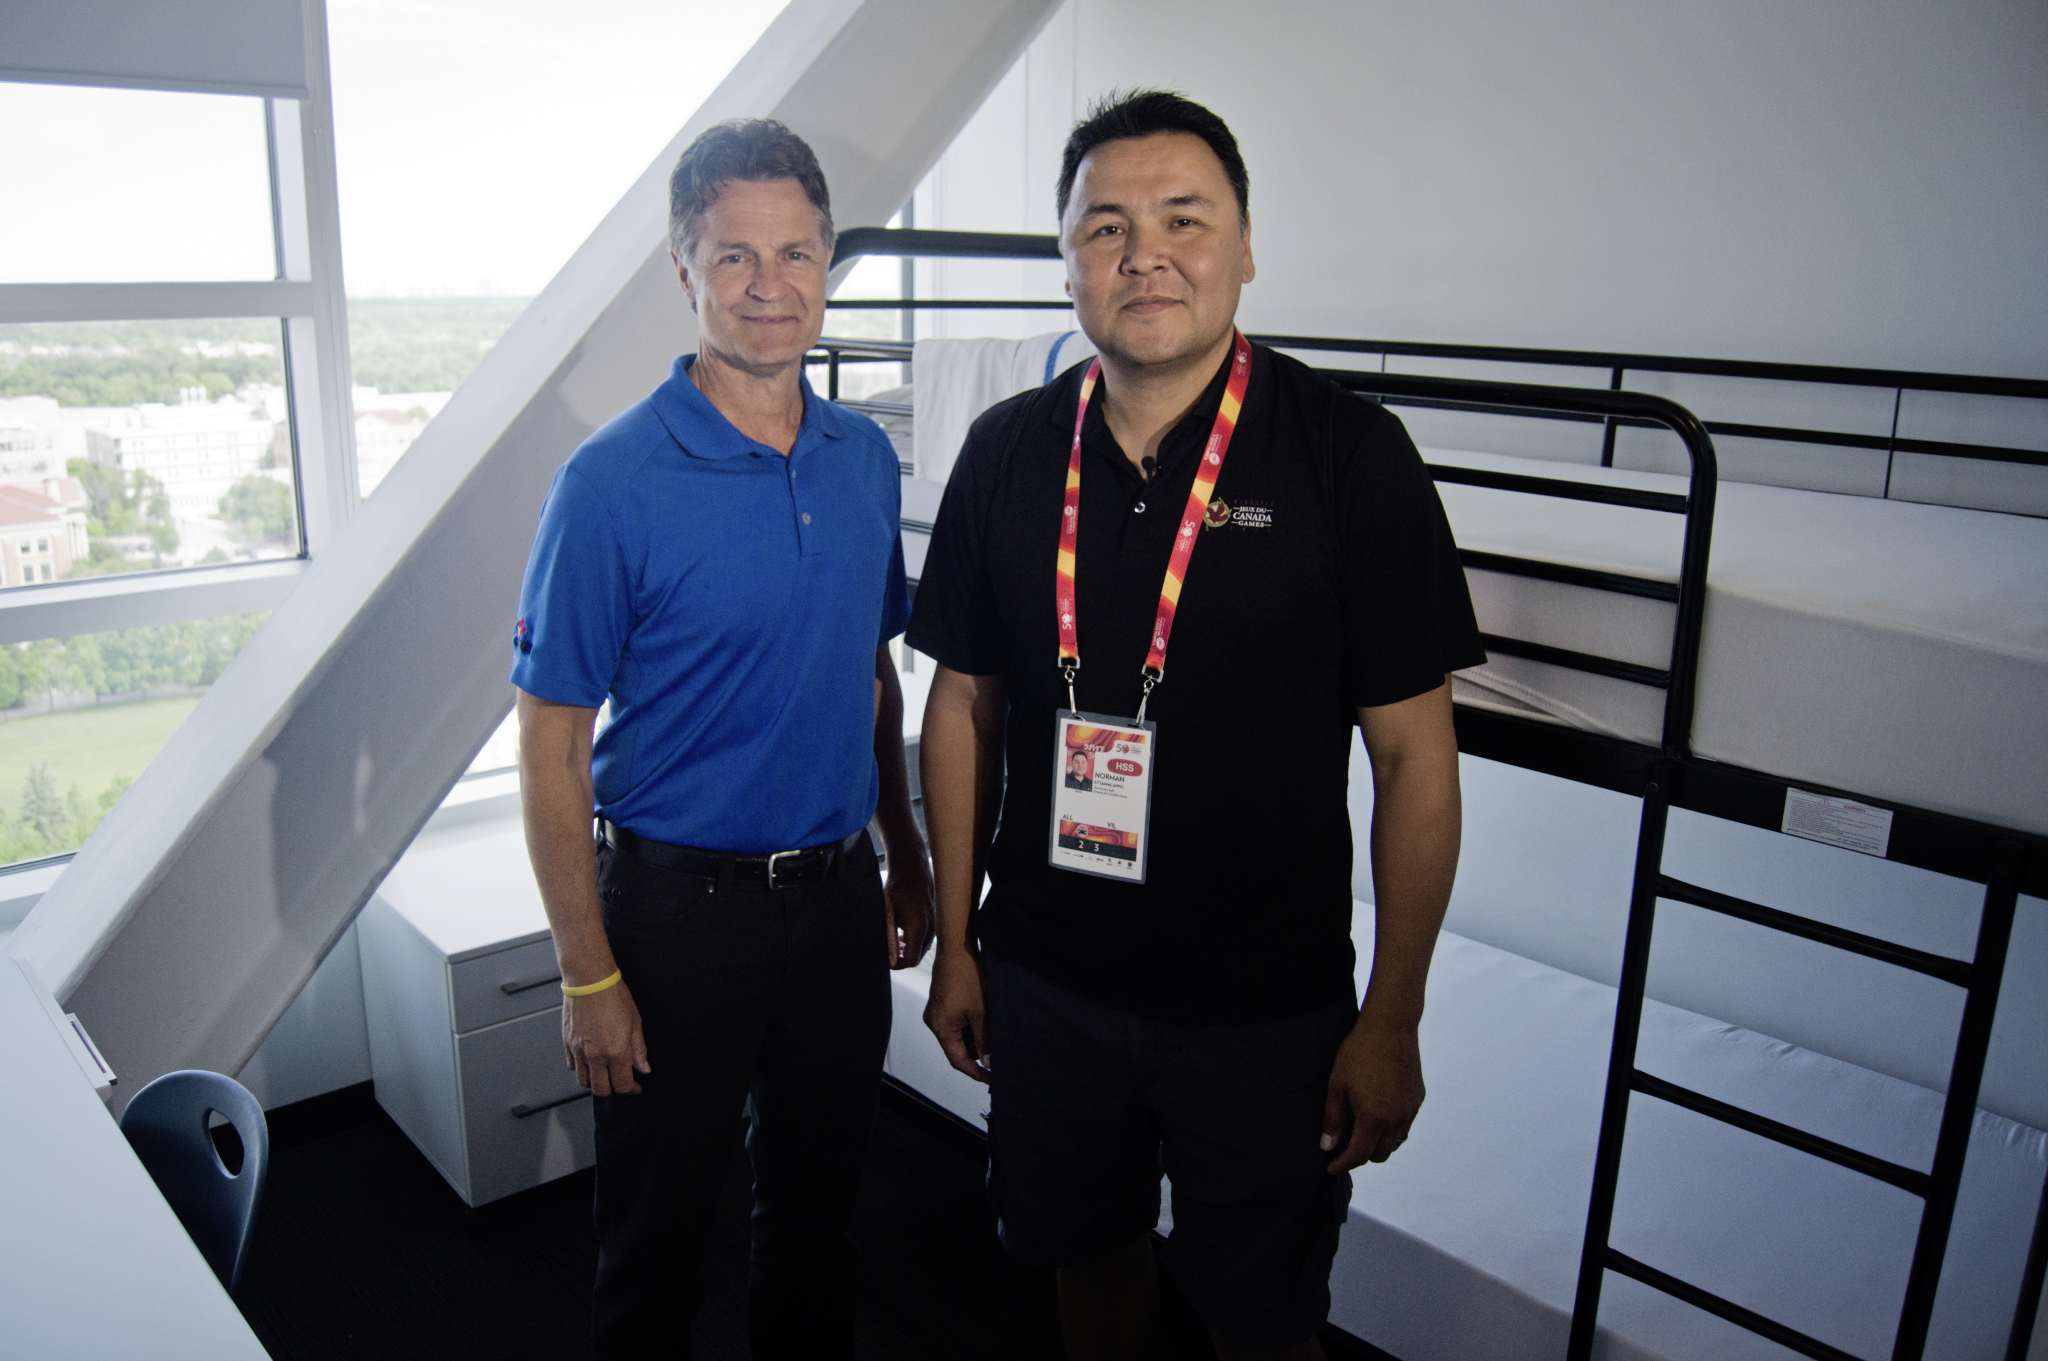 Jeff Hnatiuk, president and CEO of the 2017 Canada Summer Games, and Norman Ettawacappo, village and athletes services manager, pose for a photo in a dorm of the Athletes' Village, located in the Pembina Hall at the University of Manitoba's Fort Garry campus. Three student residences will host 2,000 athletes, coaches, and mission staff during the competition.